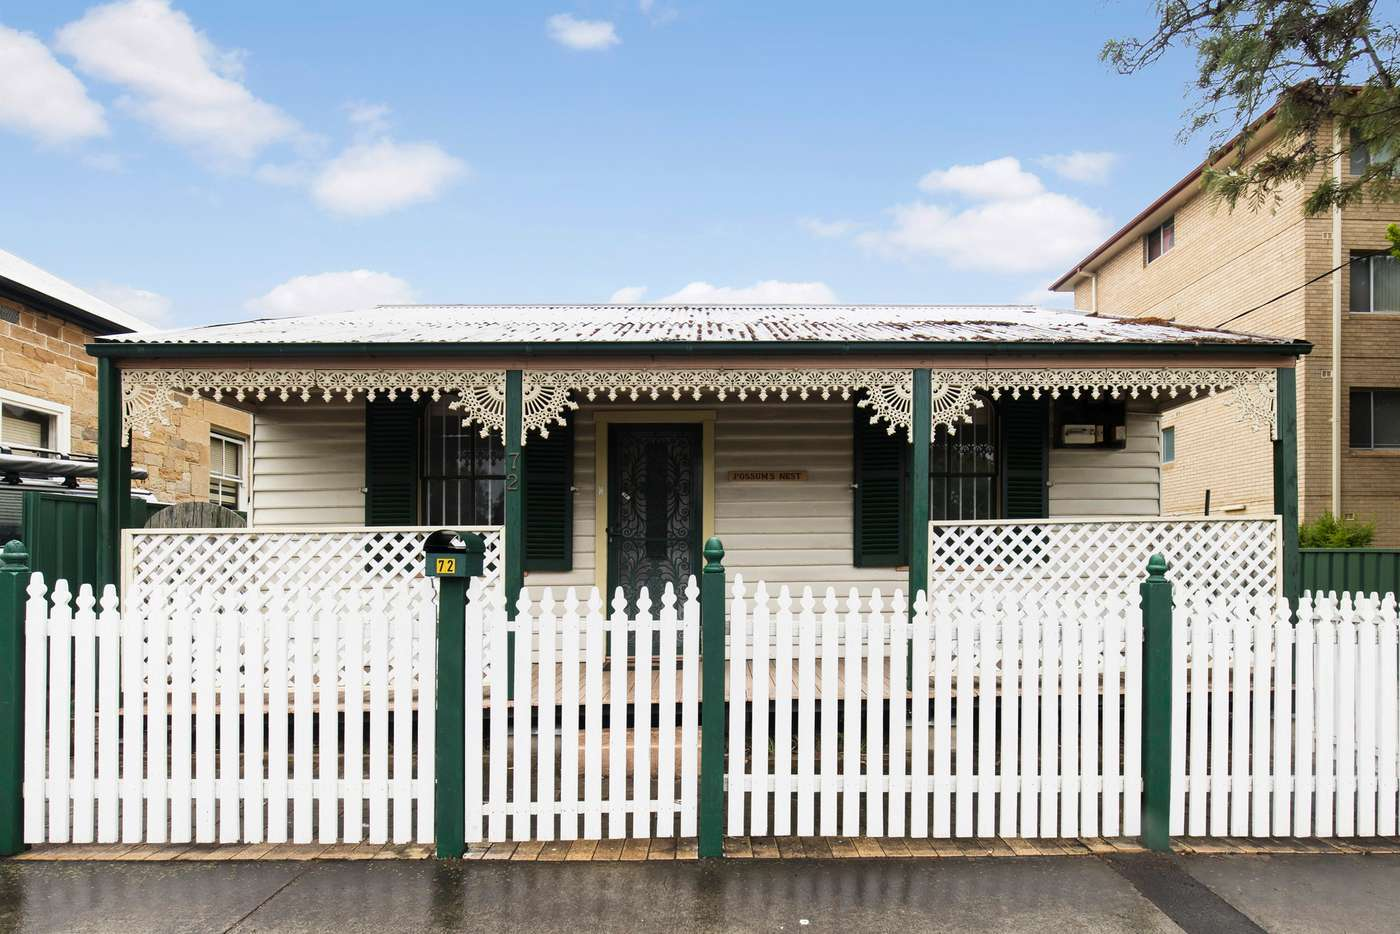 Main view of Homely house listing, 72 O'Connell Street, North Parramatta NSW 2151